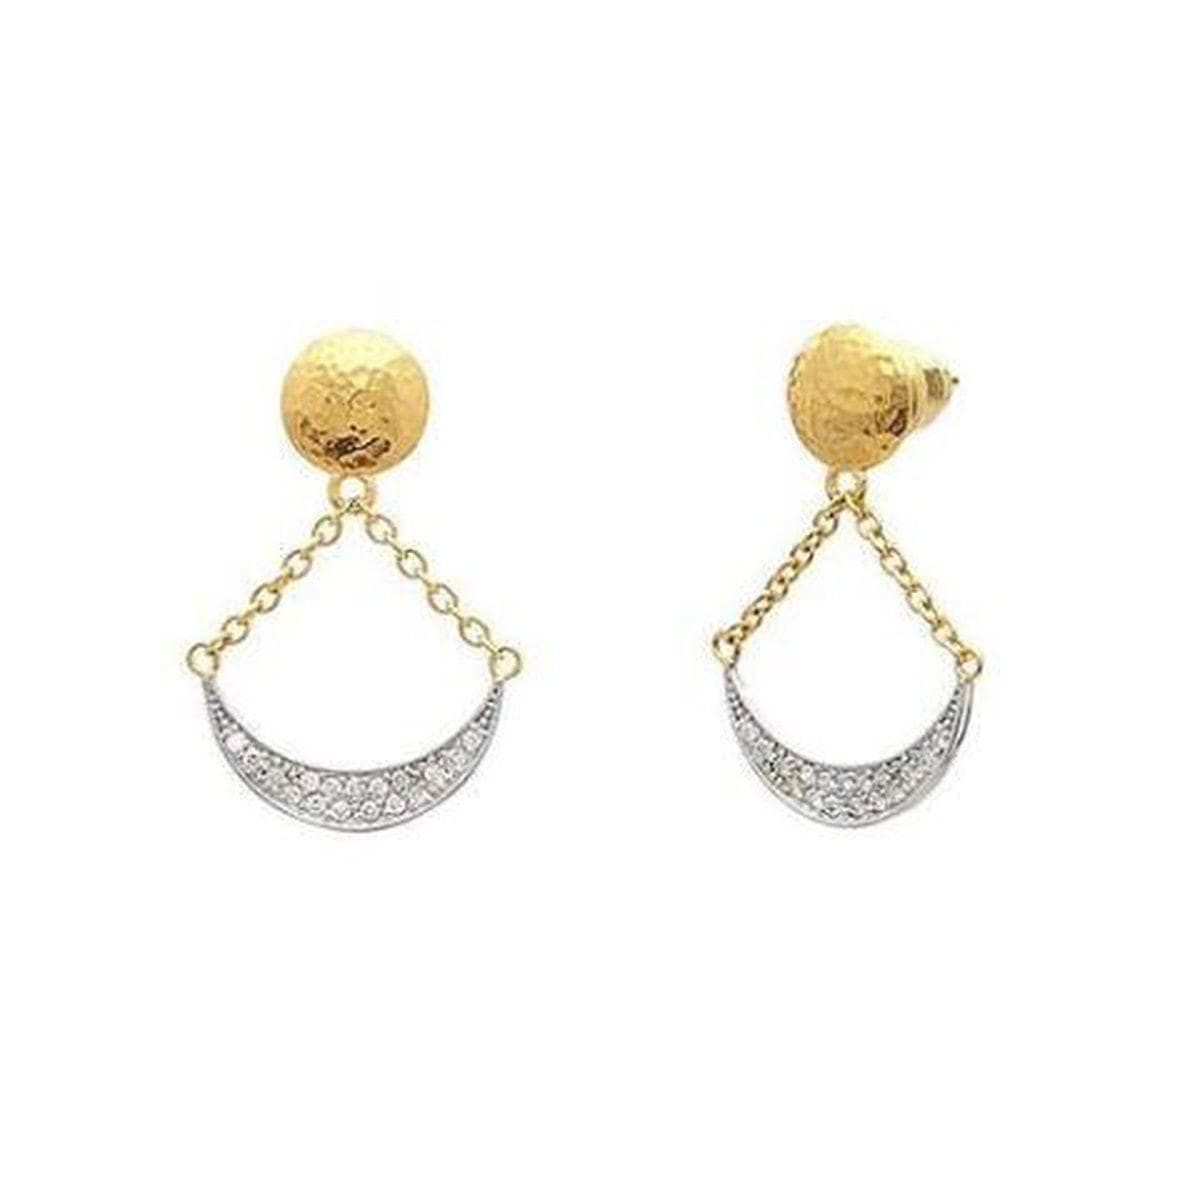 Mango 22K Gold White Diamond Earrings - LTE-LSPV-NFL-DI